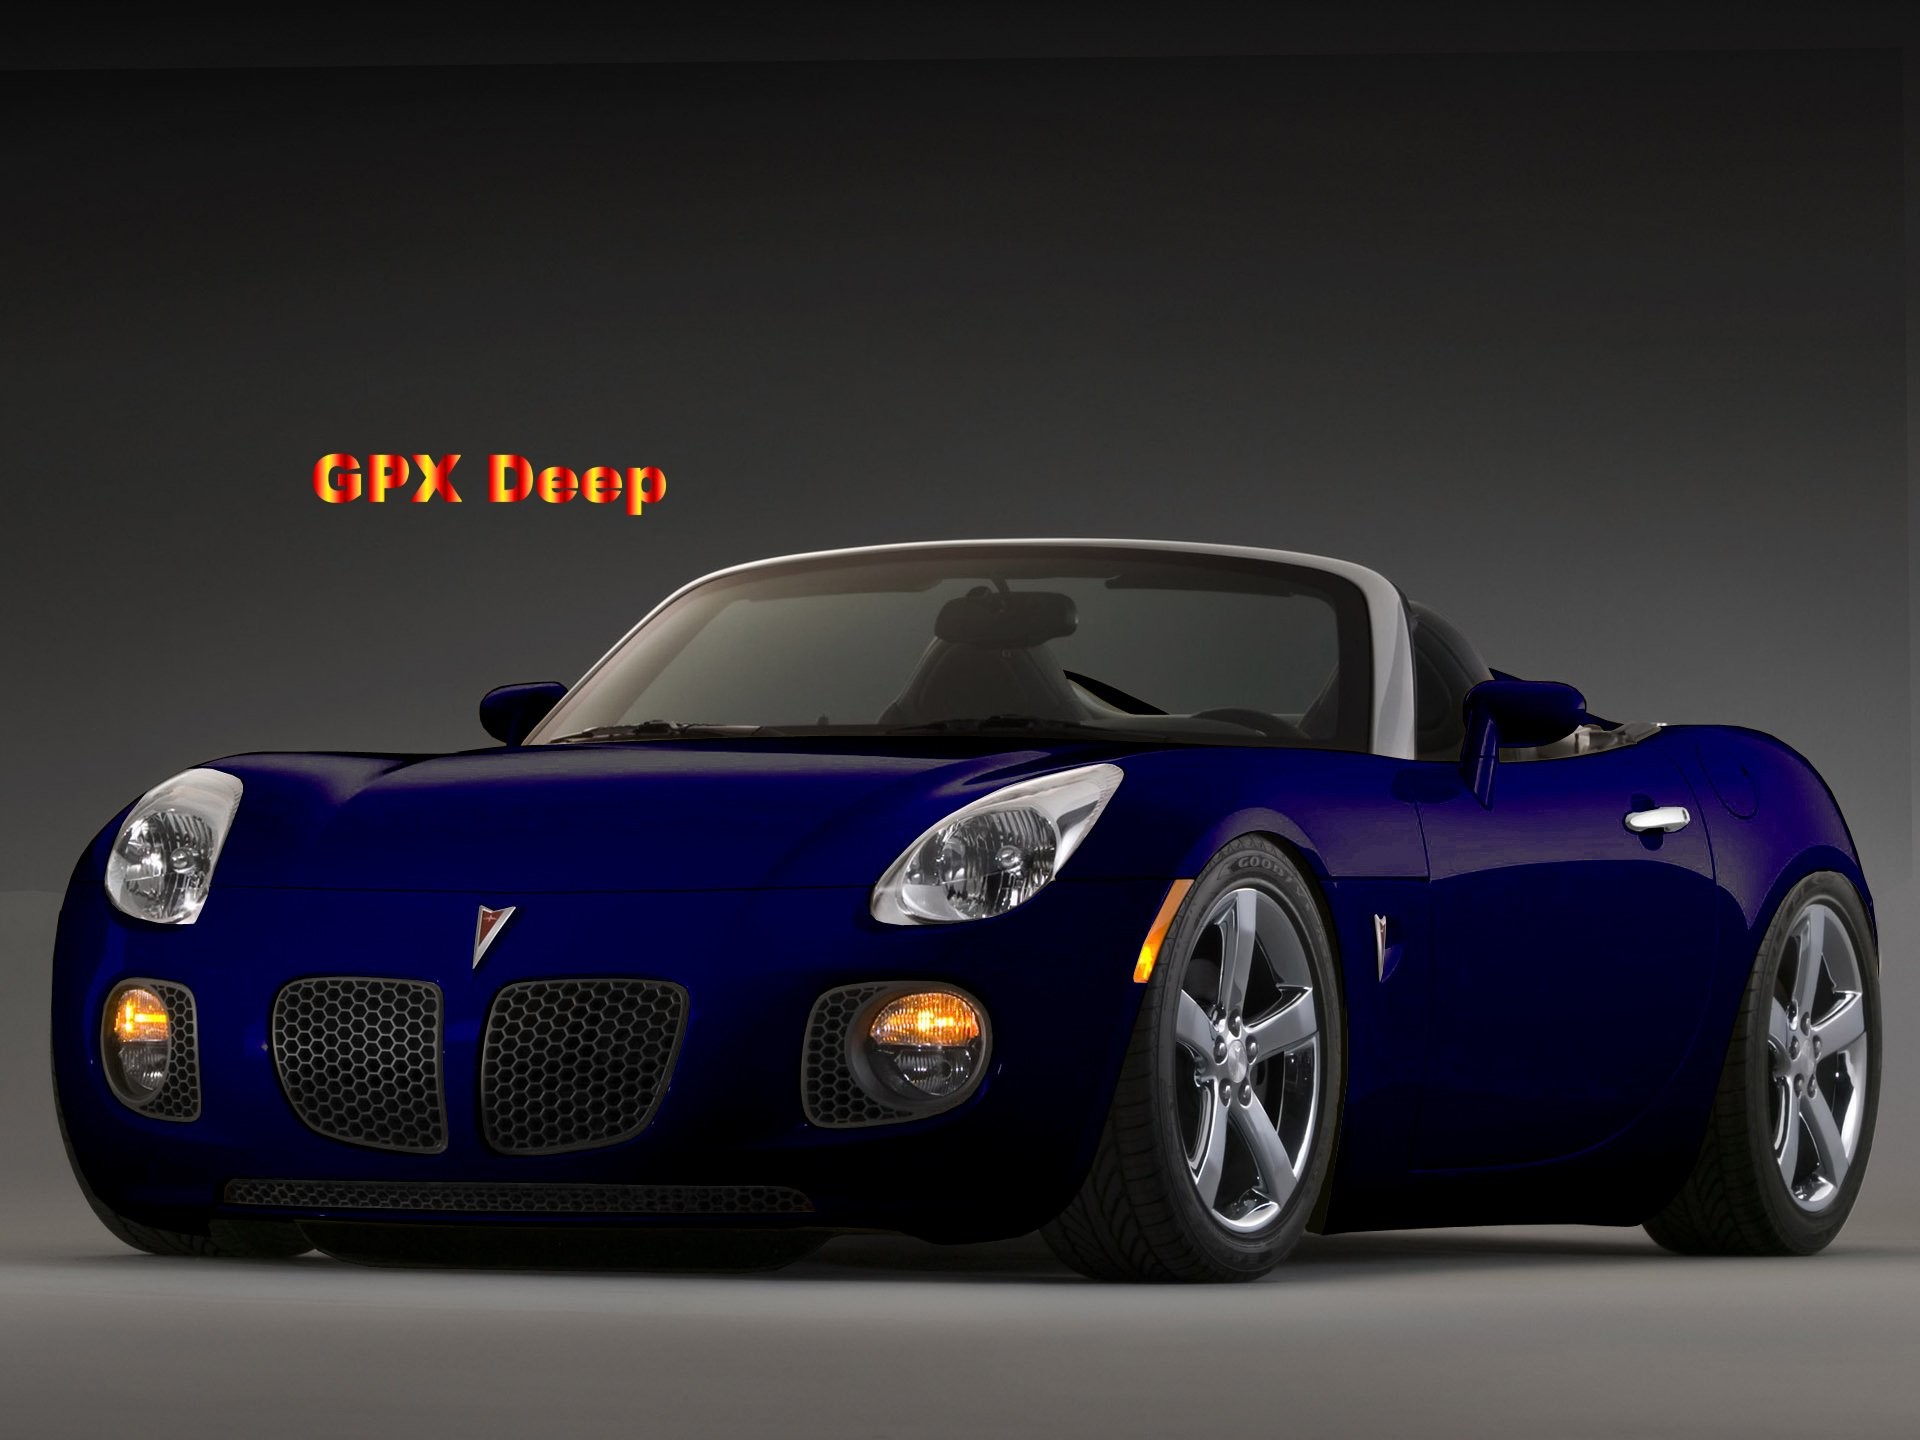 1920x1440 ... Cars Wallpapers Pontiac Deep Blue Pontiac Solstice 2006